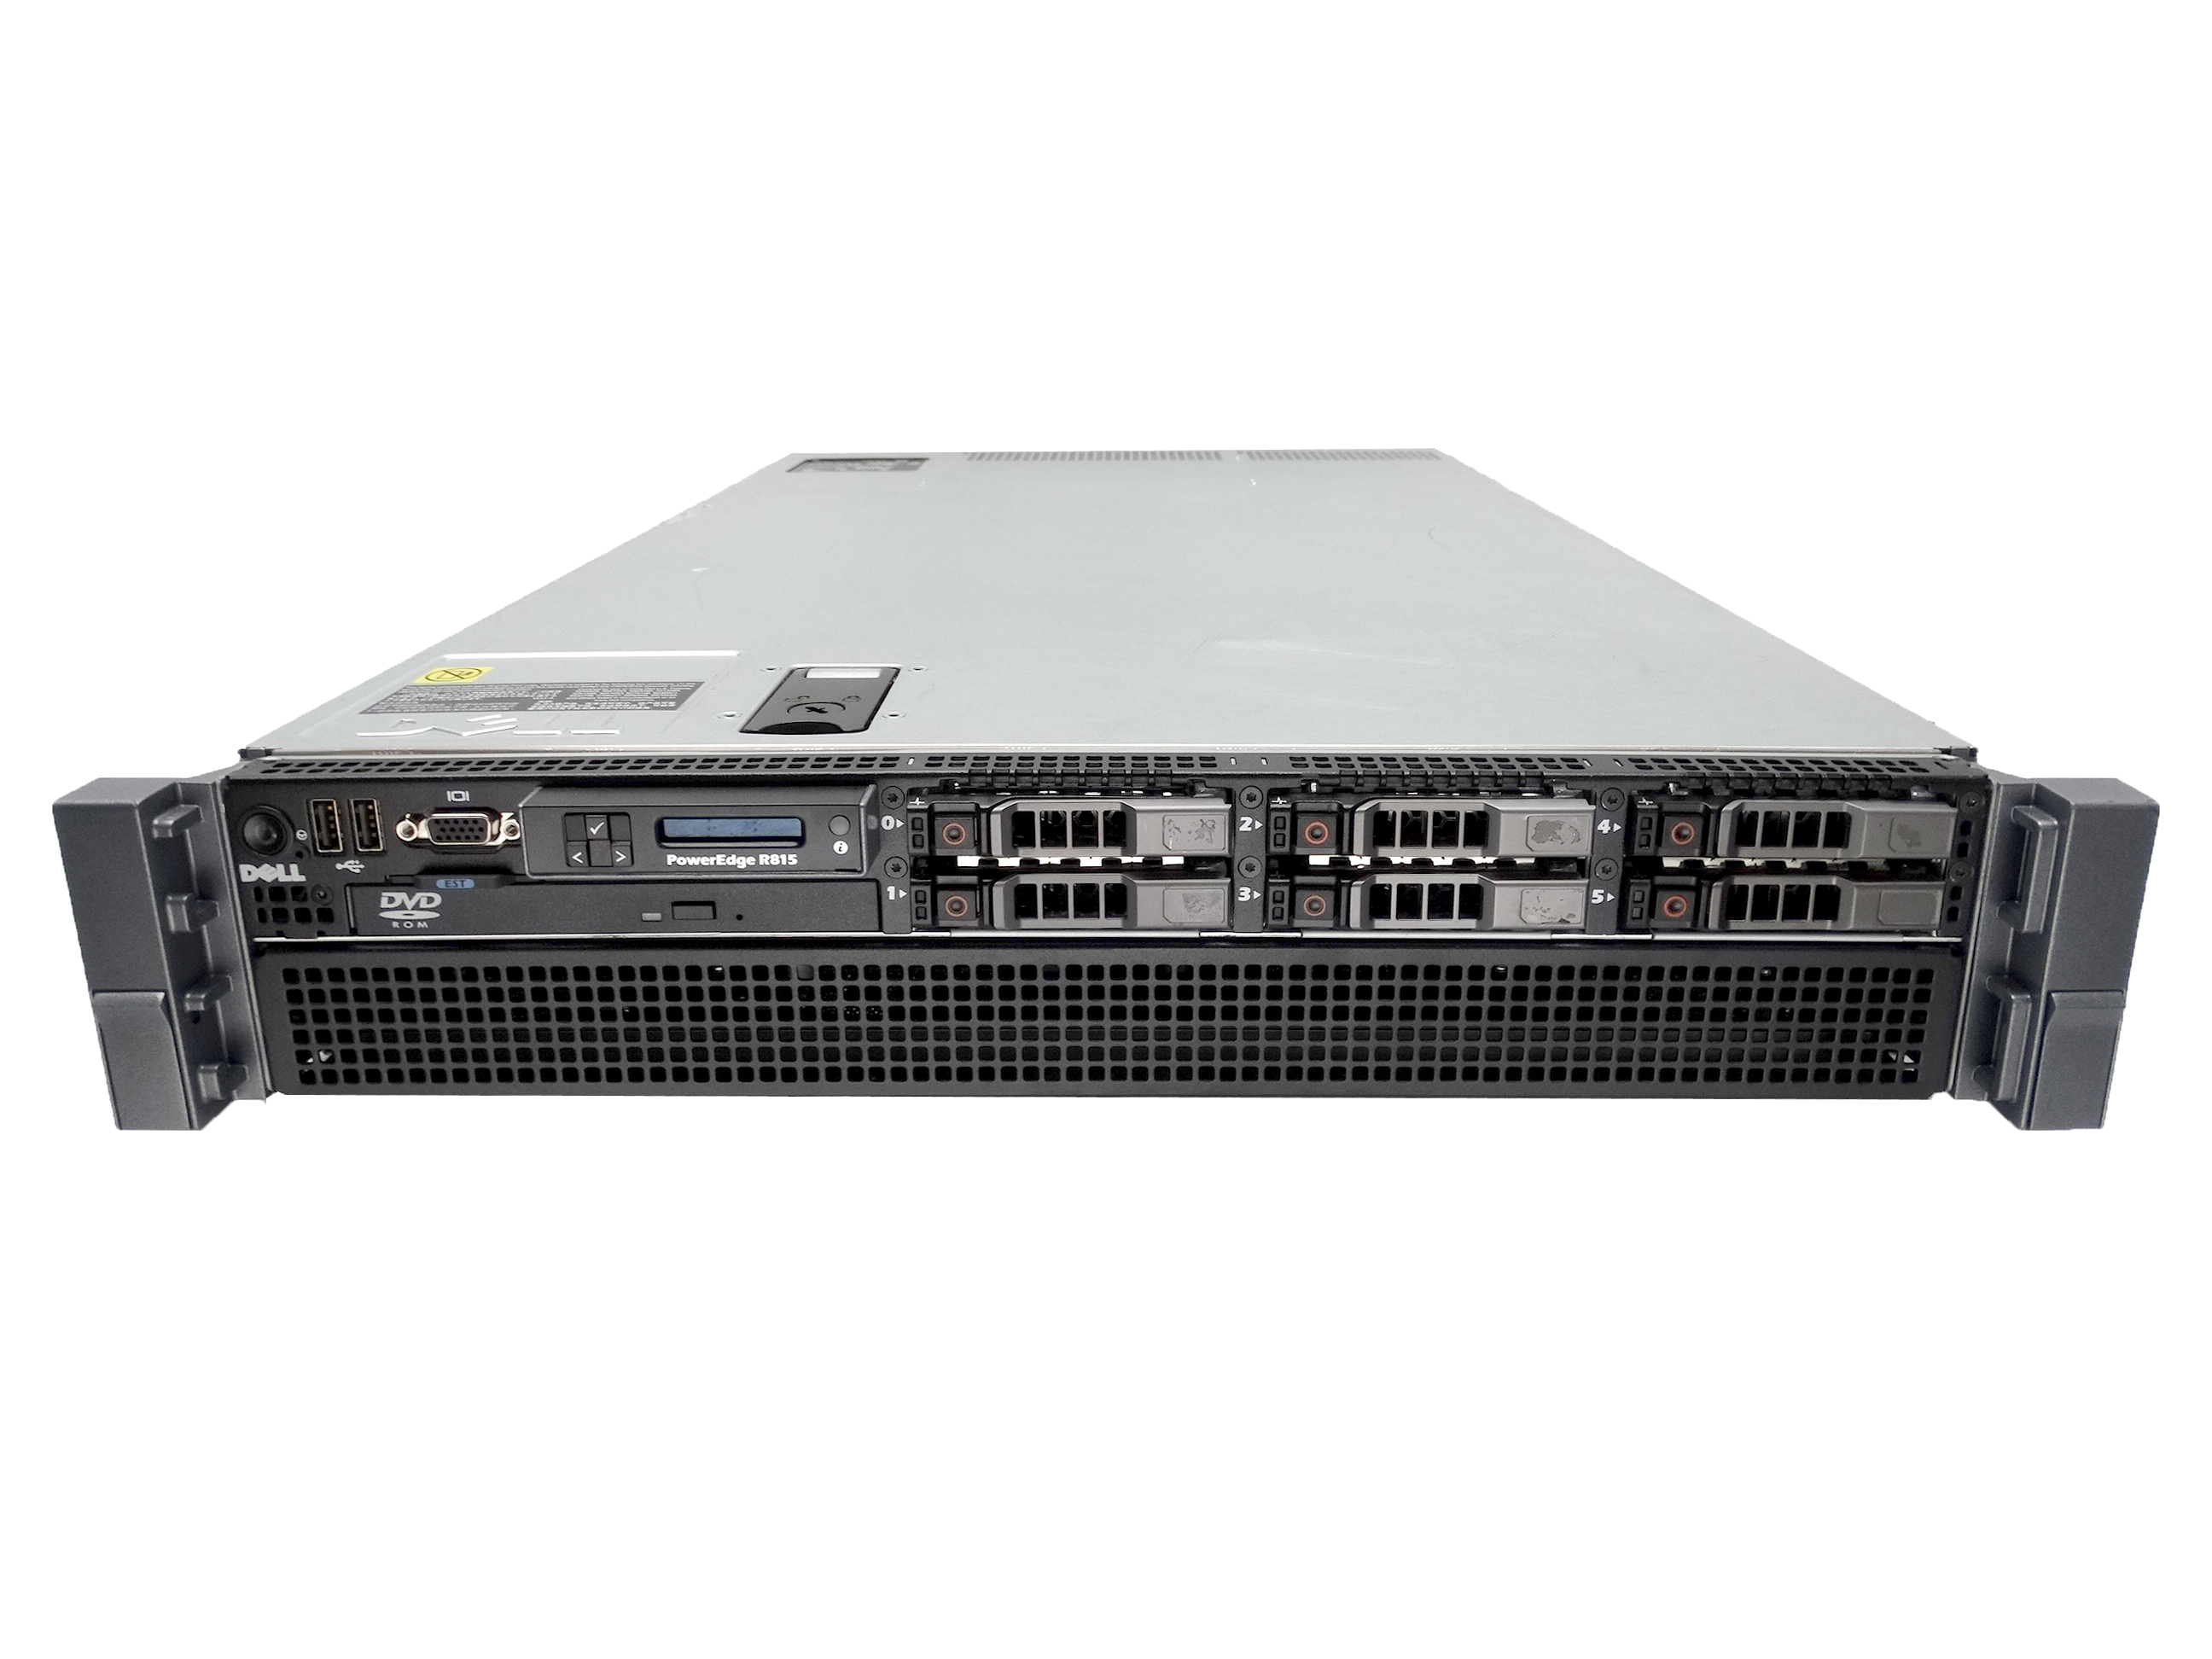 Dell PowerEdge R815 6-Bay SFF 2U Rackmount Server